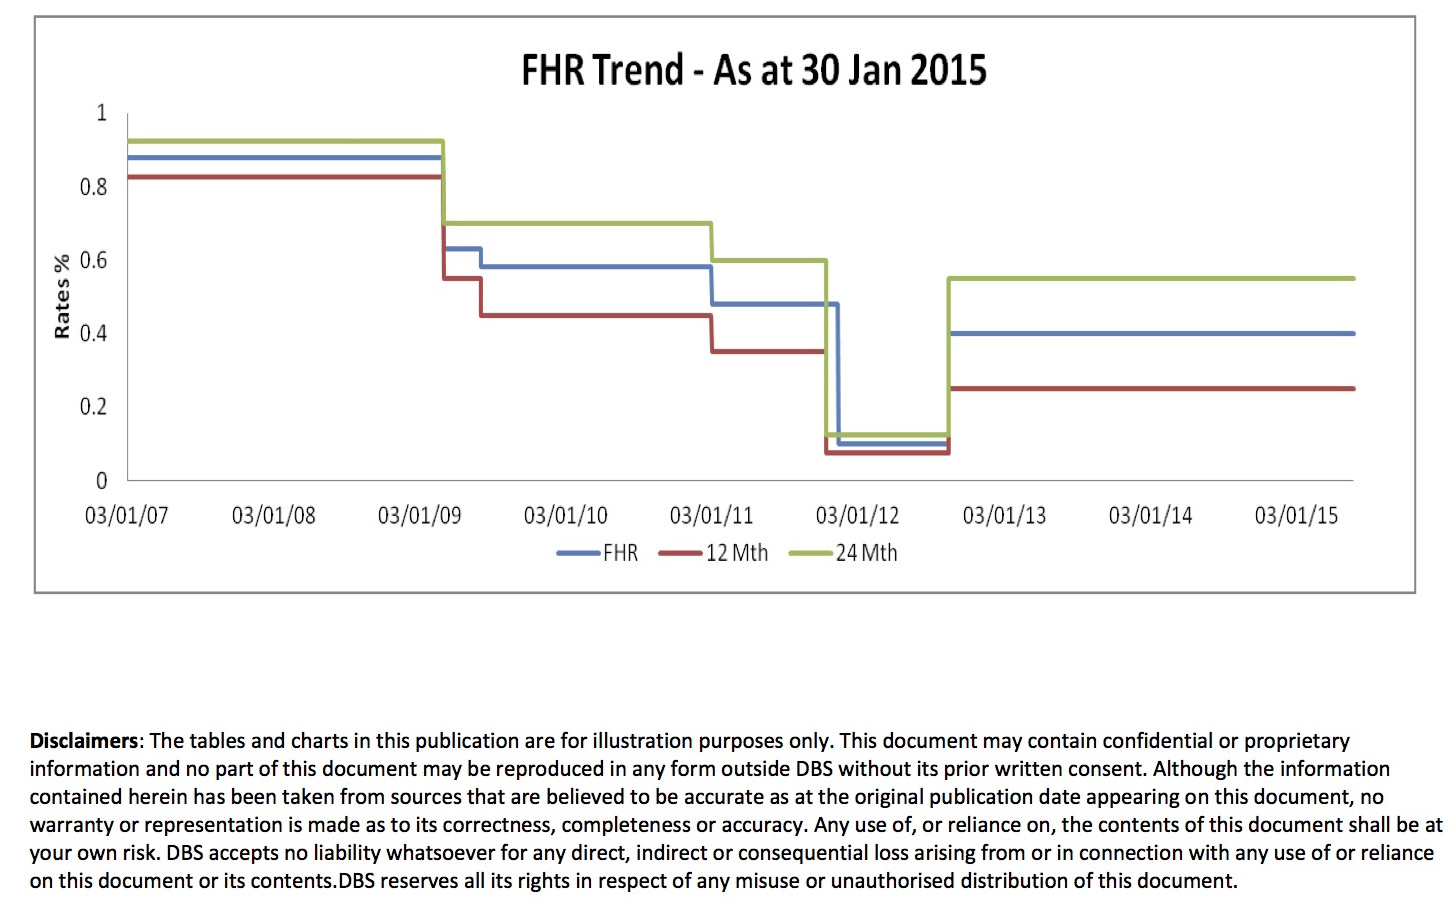 FHR and FHR sibor charts 2007-30 Jan15